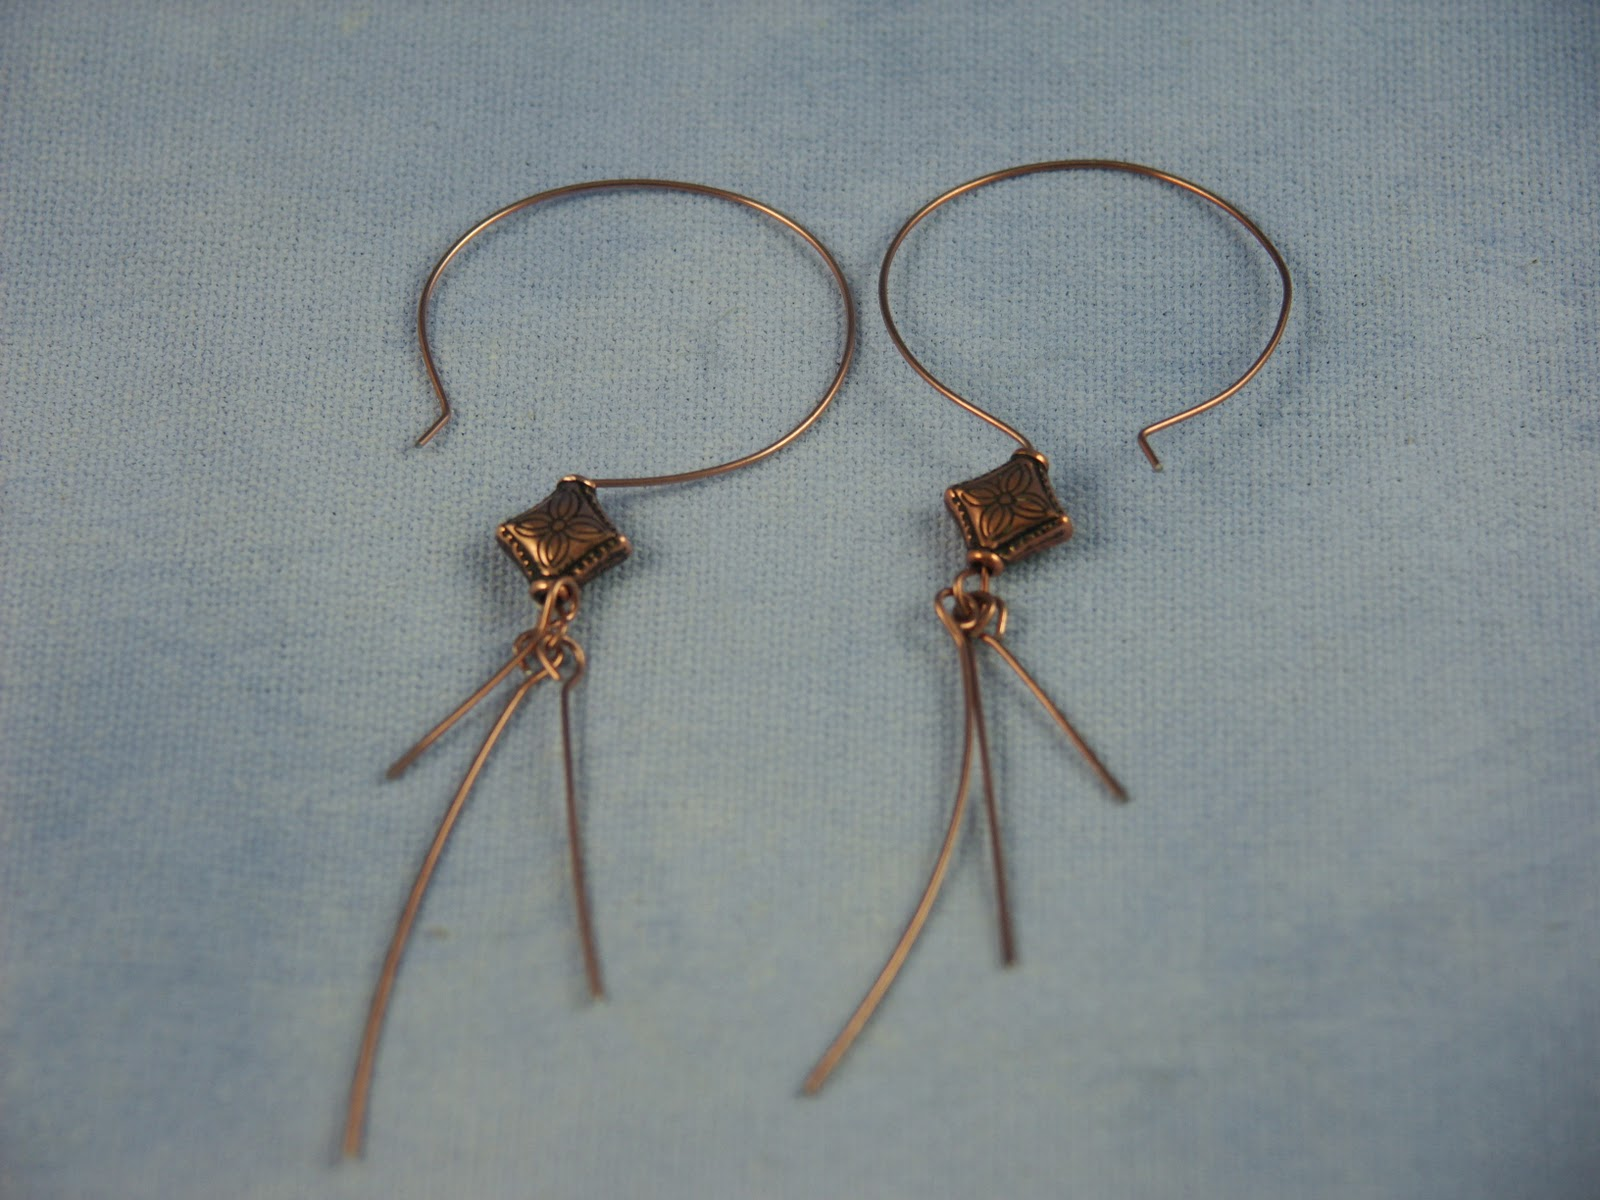 New Jewelry A Day: Make Earrings from Copper Wire